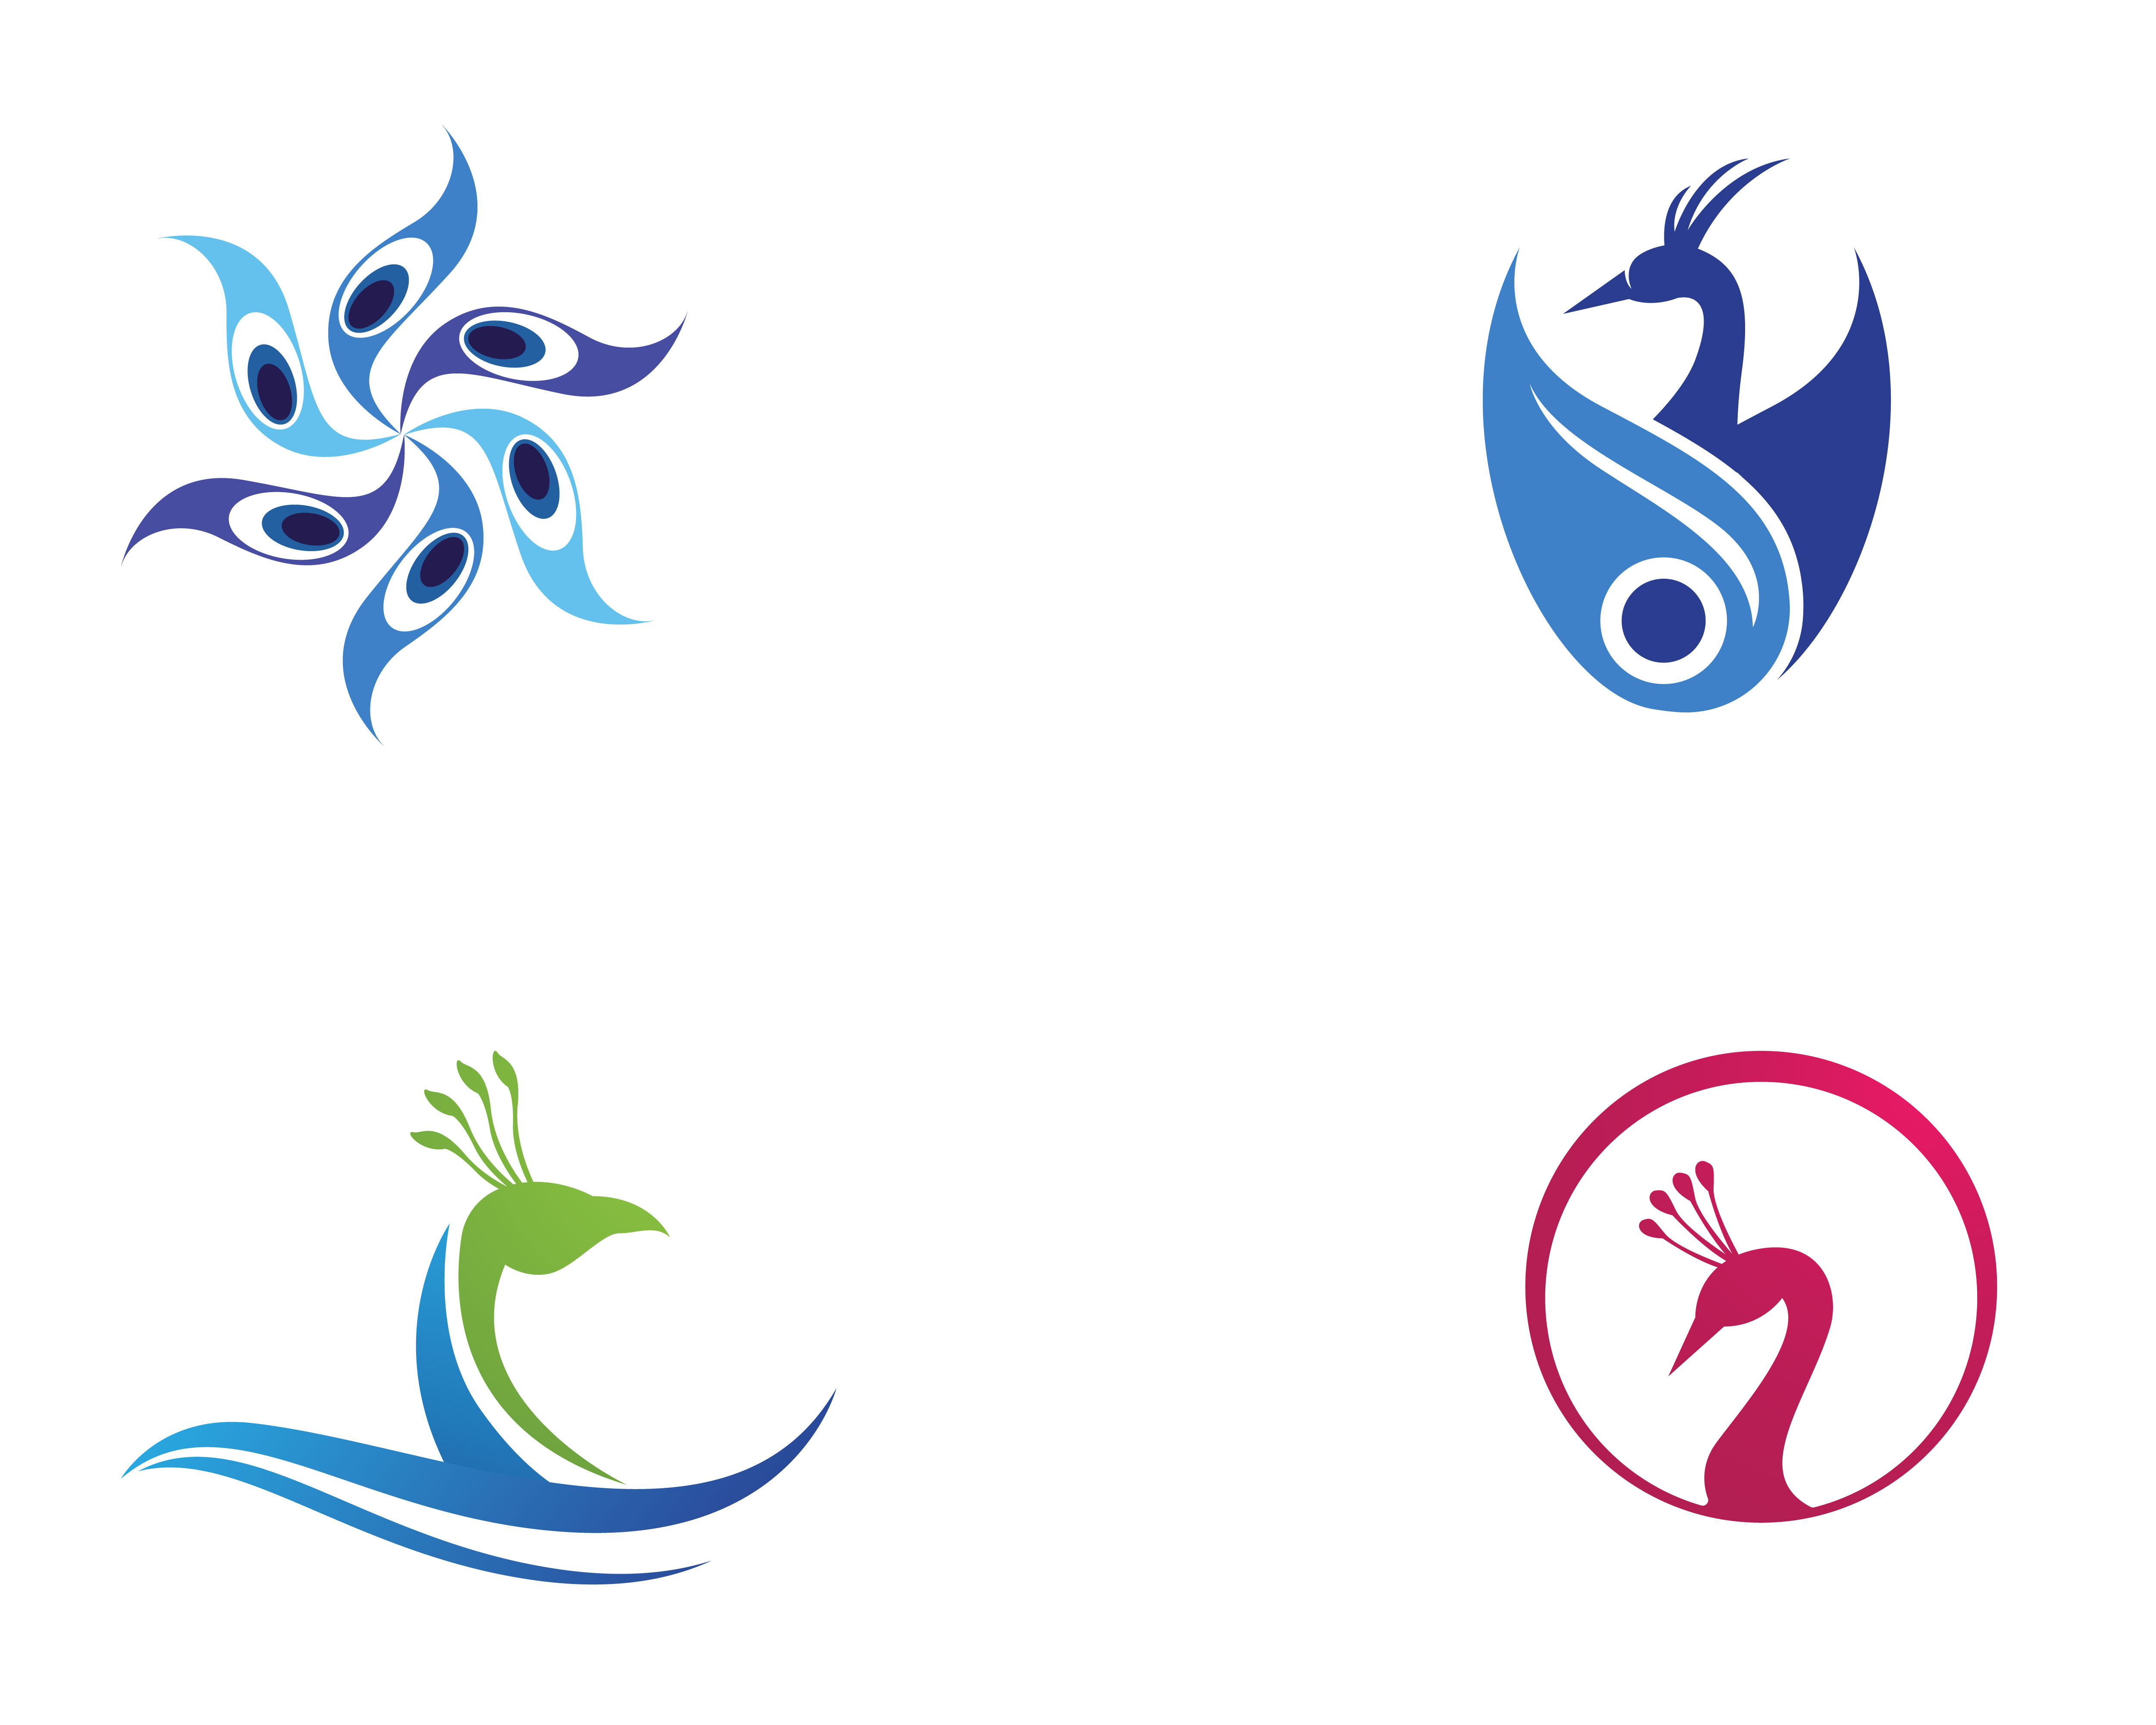 peacock head logo and symbols template icon app download free vectors clipart graphics vector art vecteezy